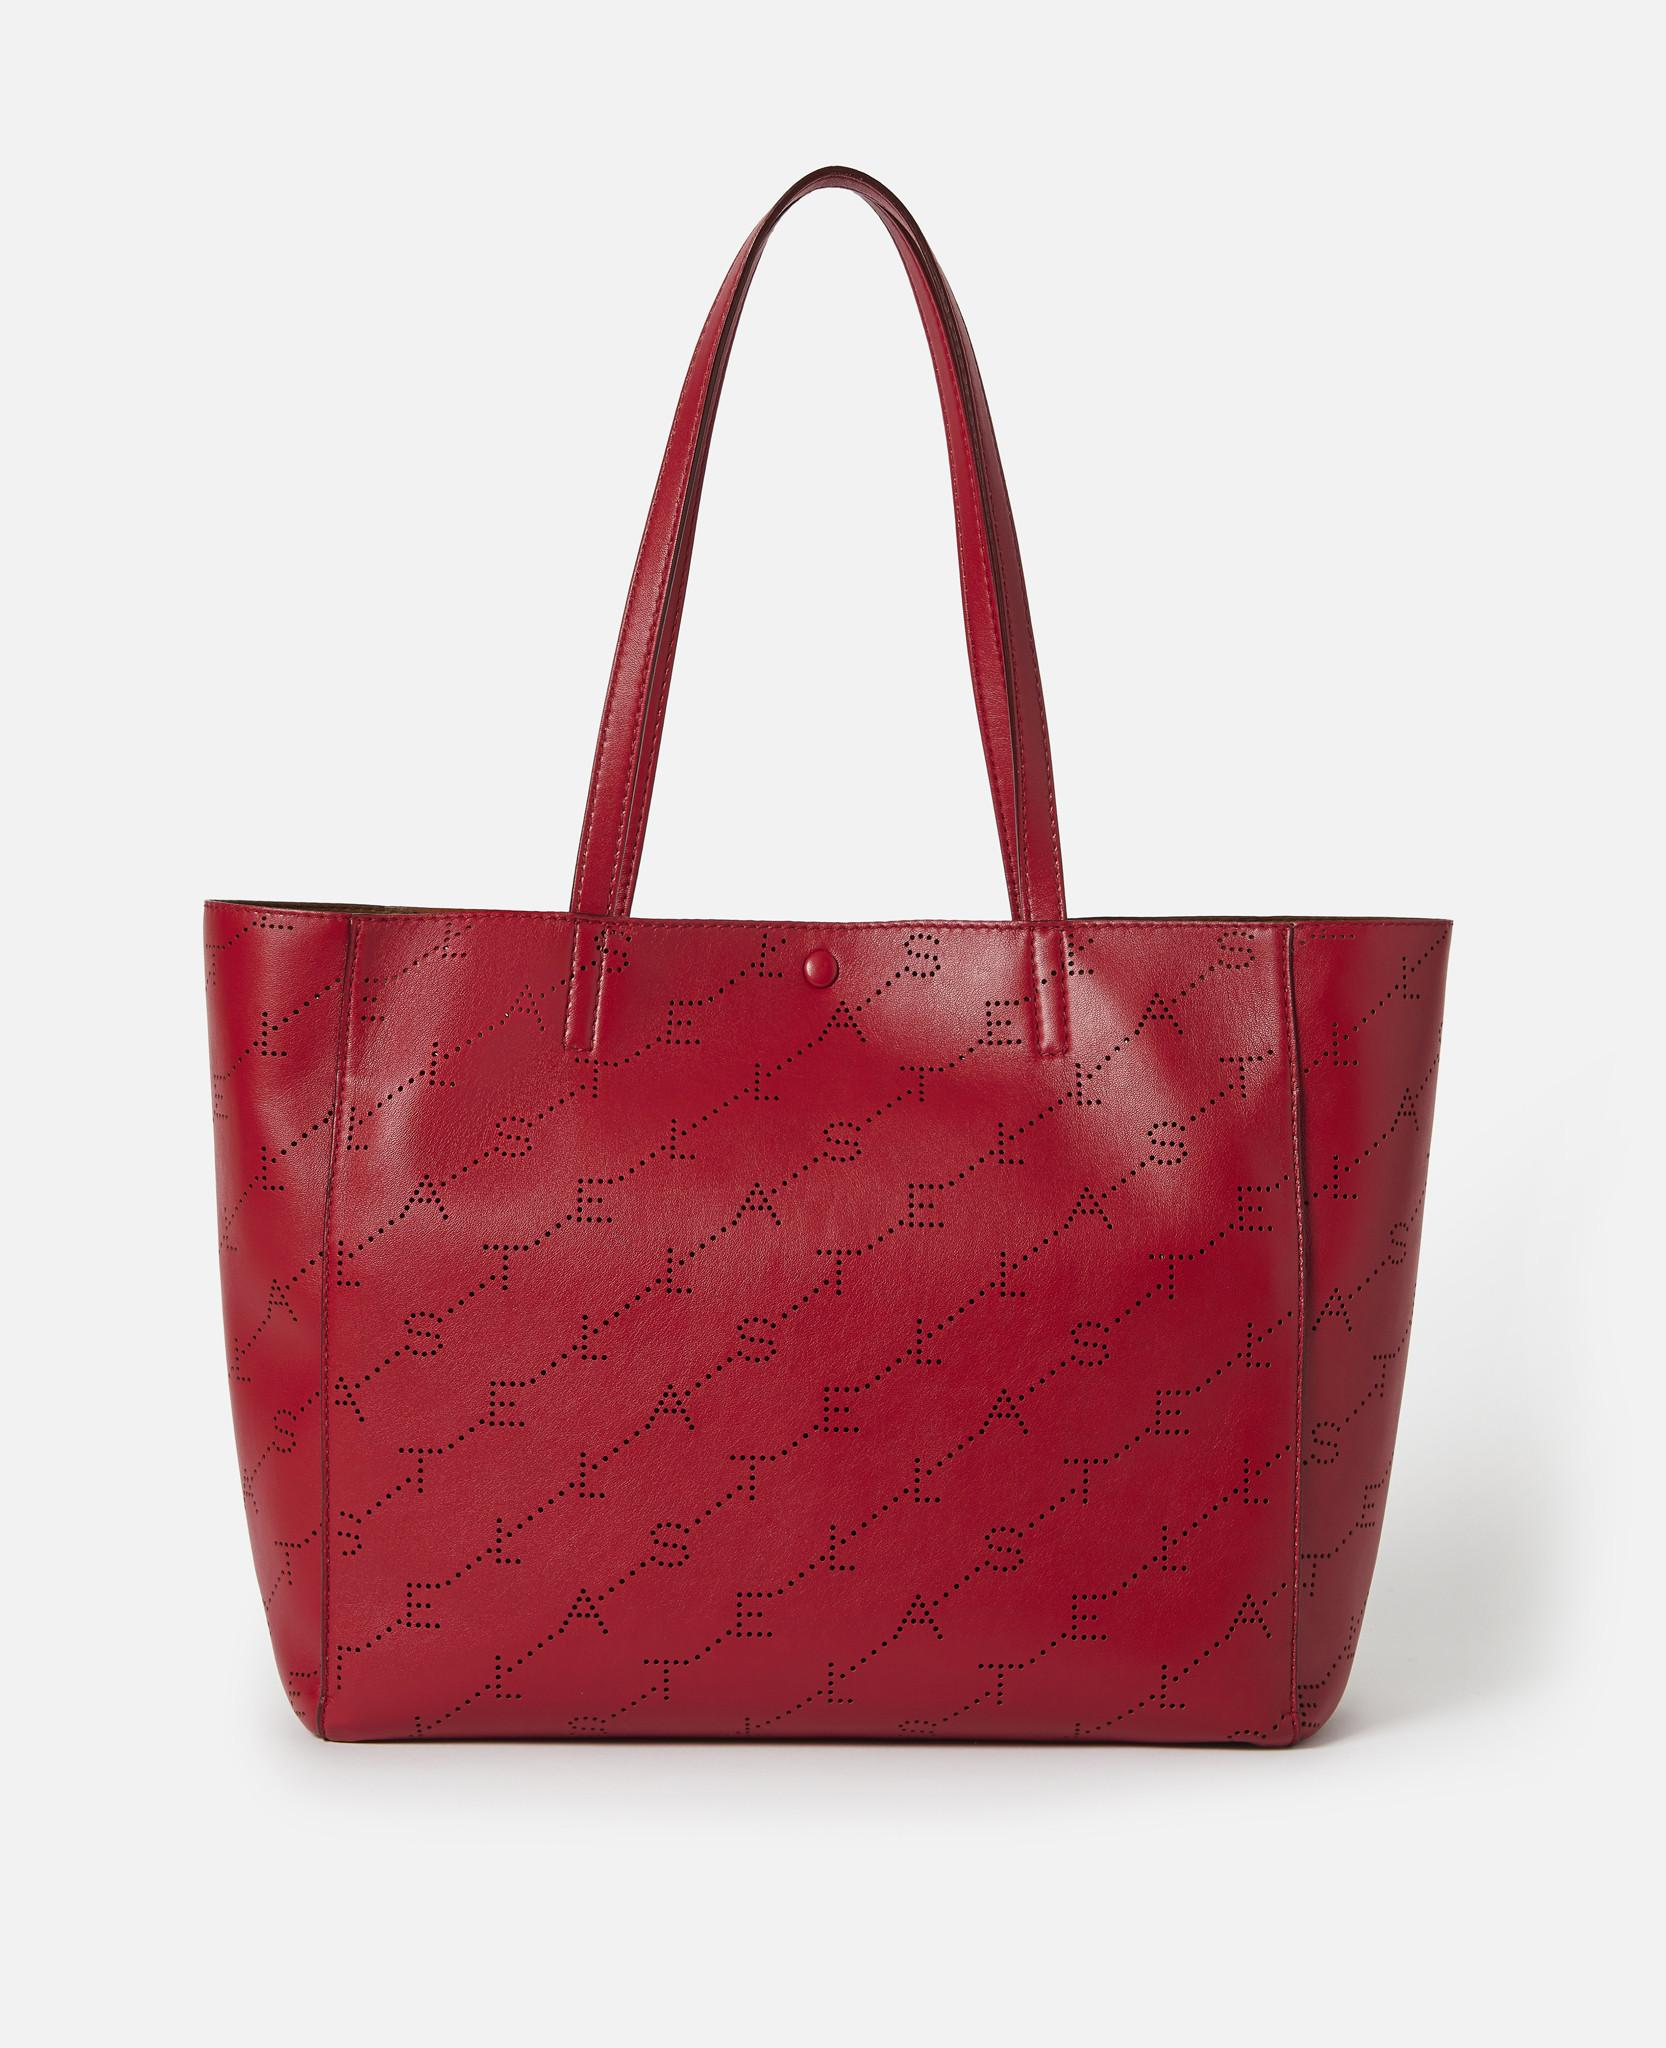 581fa05d1f3fe Stella McCartney. Women s Red Monogram Small Tote.  875 From Orchard Mile